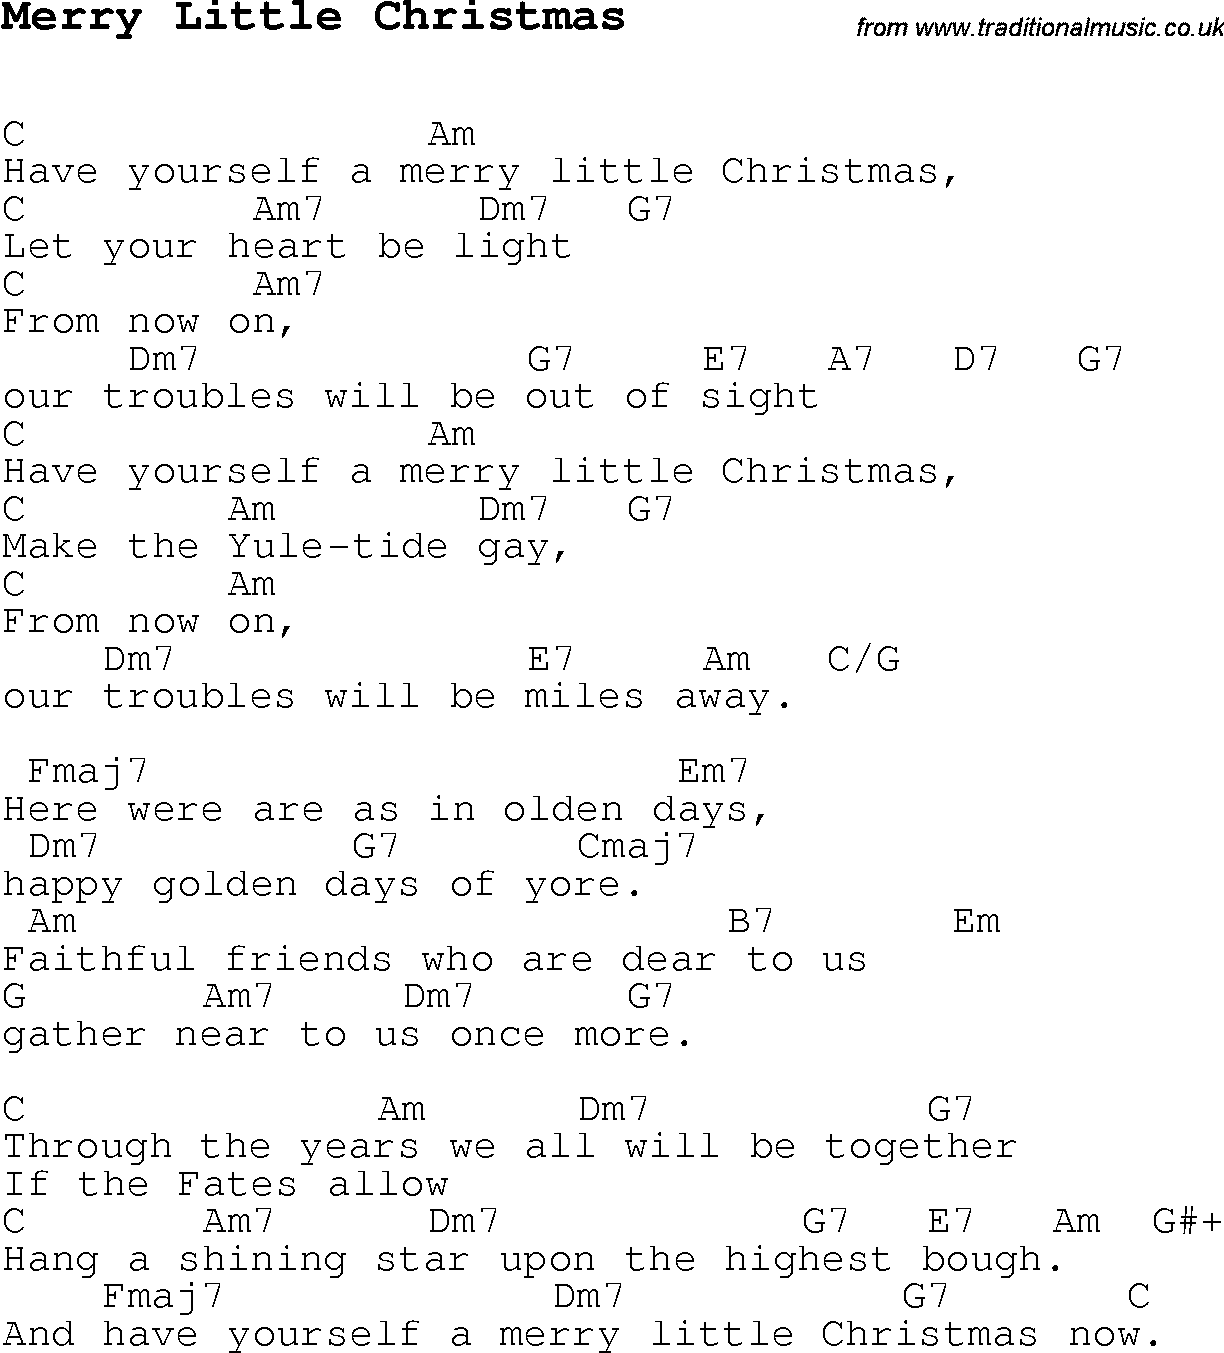 merry little christmas guitar chords christmaswalls co - Have Yourself A Merry Little Christmas Chords